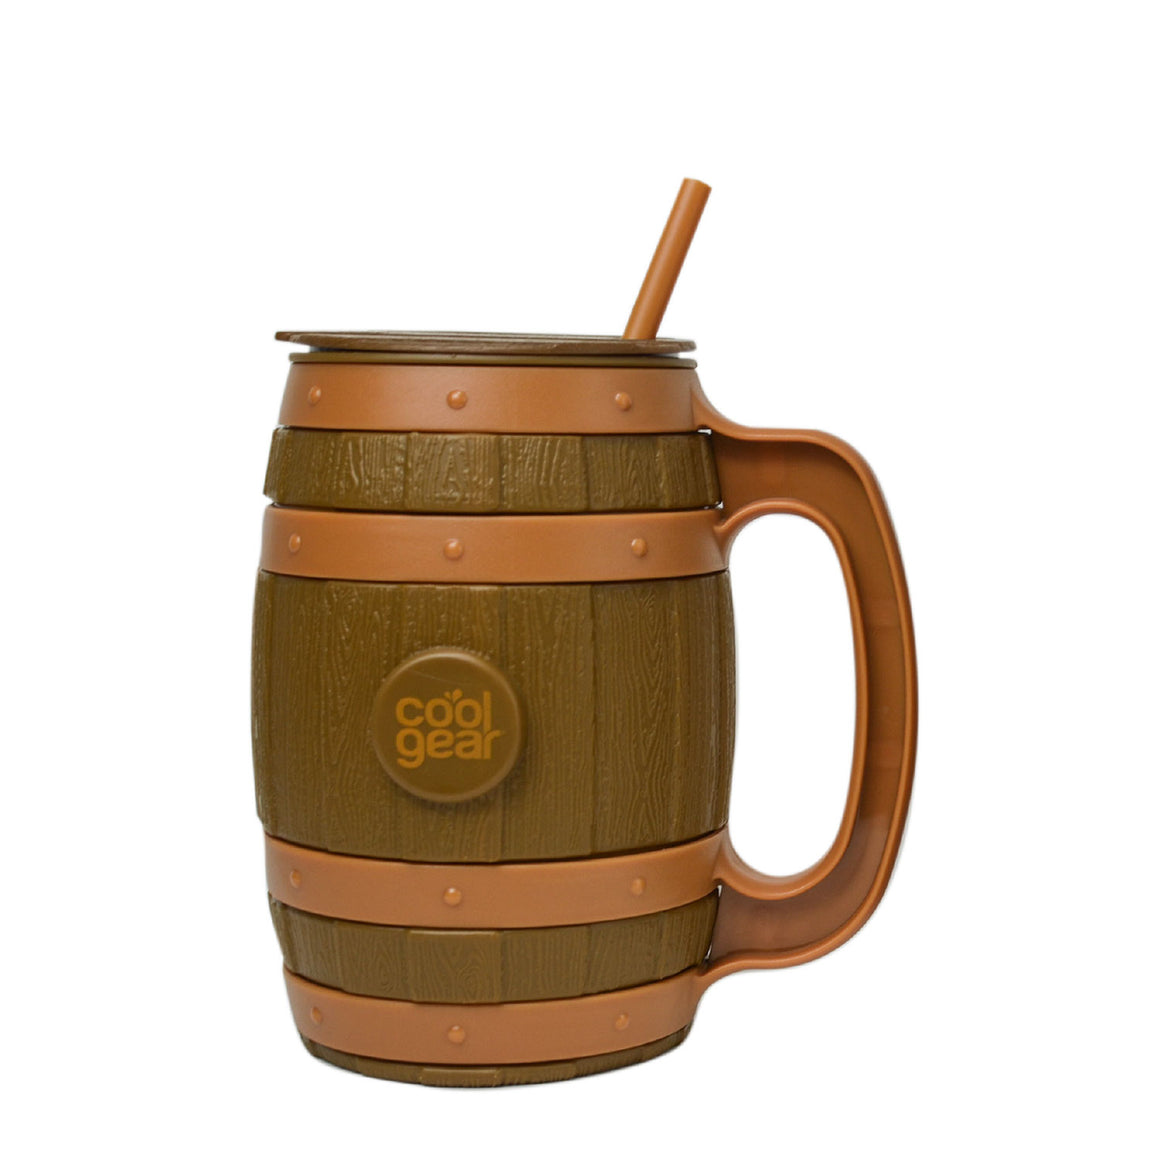 Brown/Tan 40 Oz Whiskey Barrel Mug at Cool Gear St. Patrick's